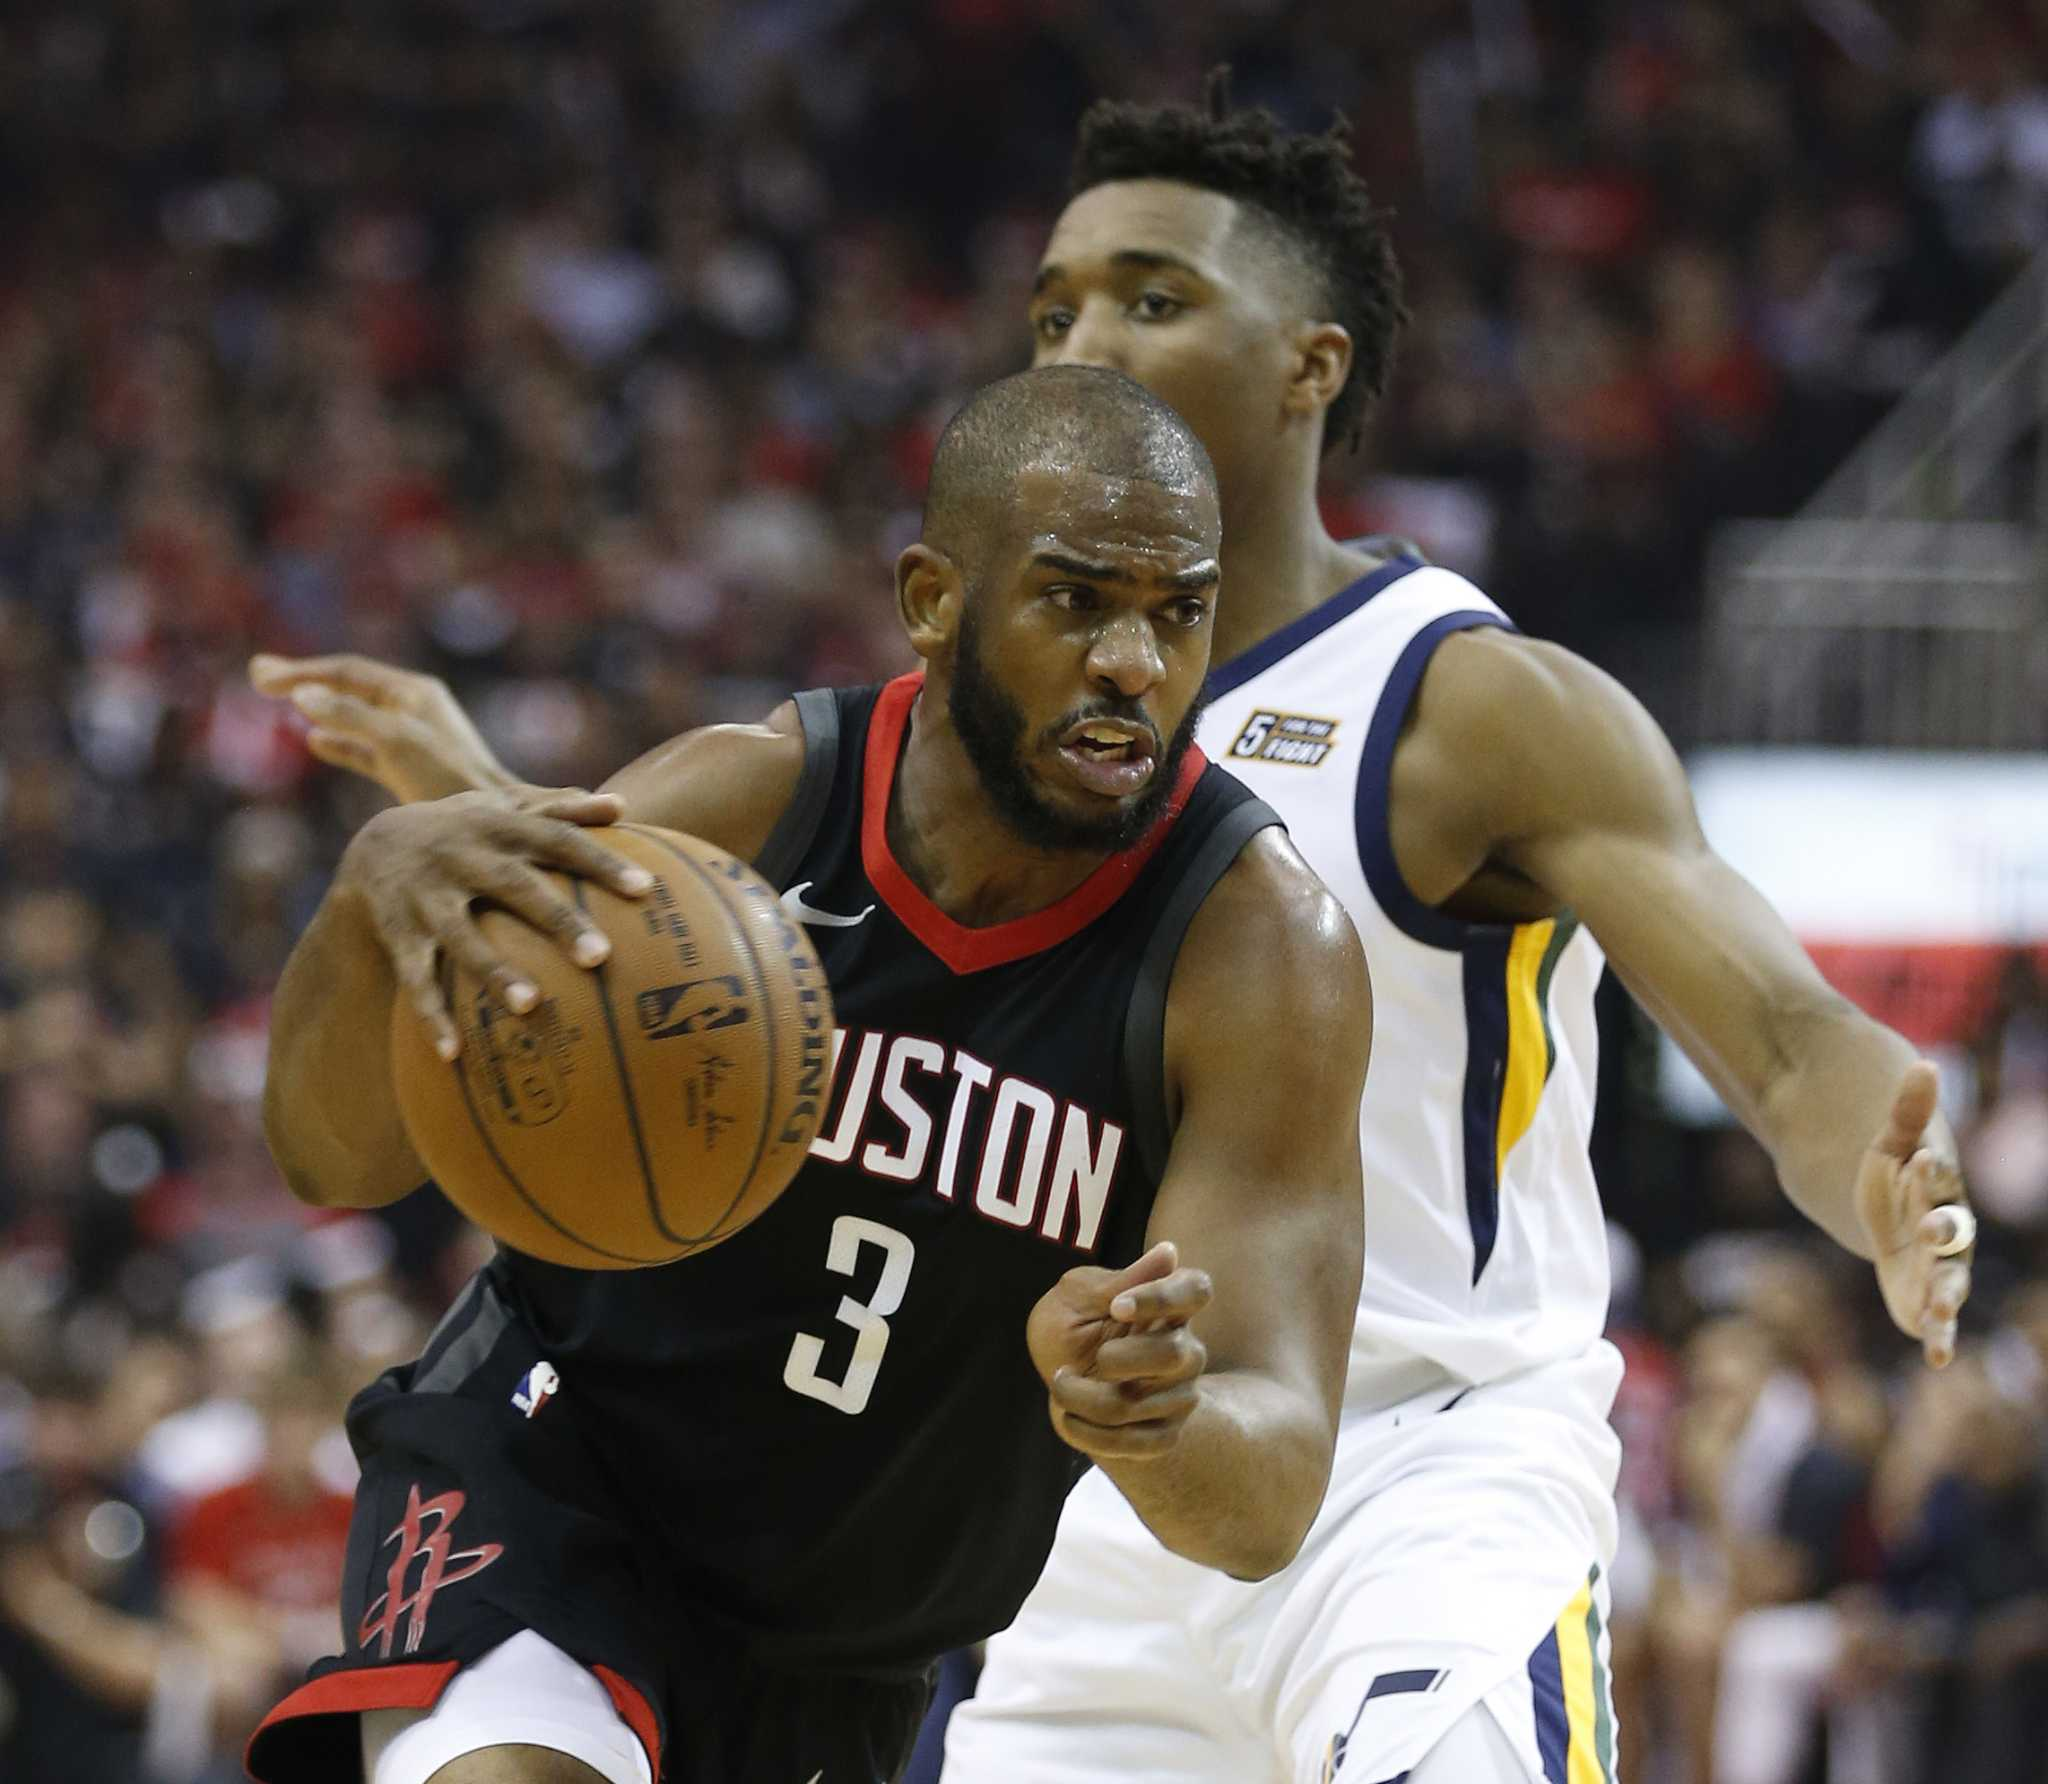 Rockets Jazz Game 2: Chris Paul Carries Rockets Past Jazz, To Western